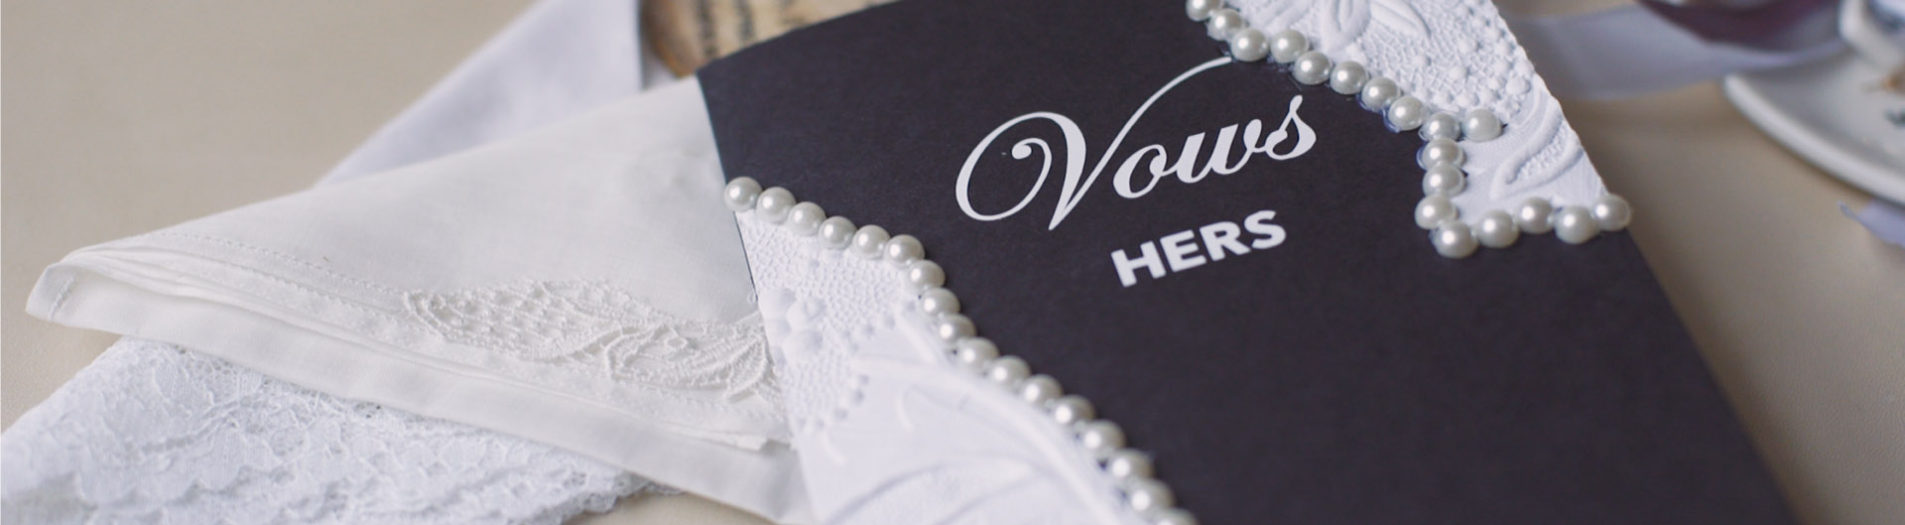 How to Write Your Own Wedding Vows: 3 Essential Tips